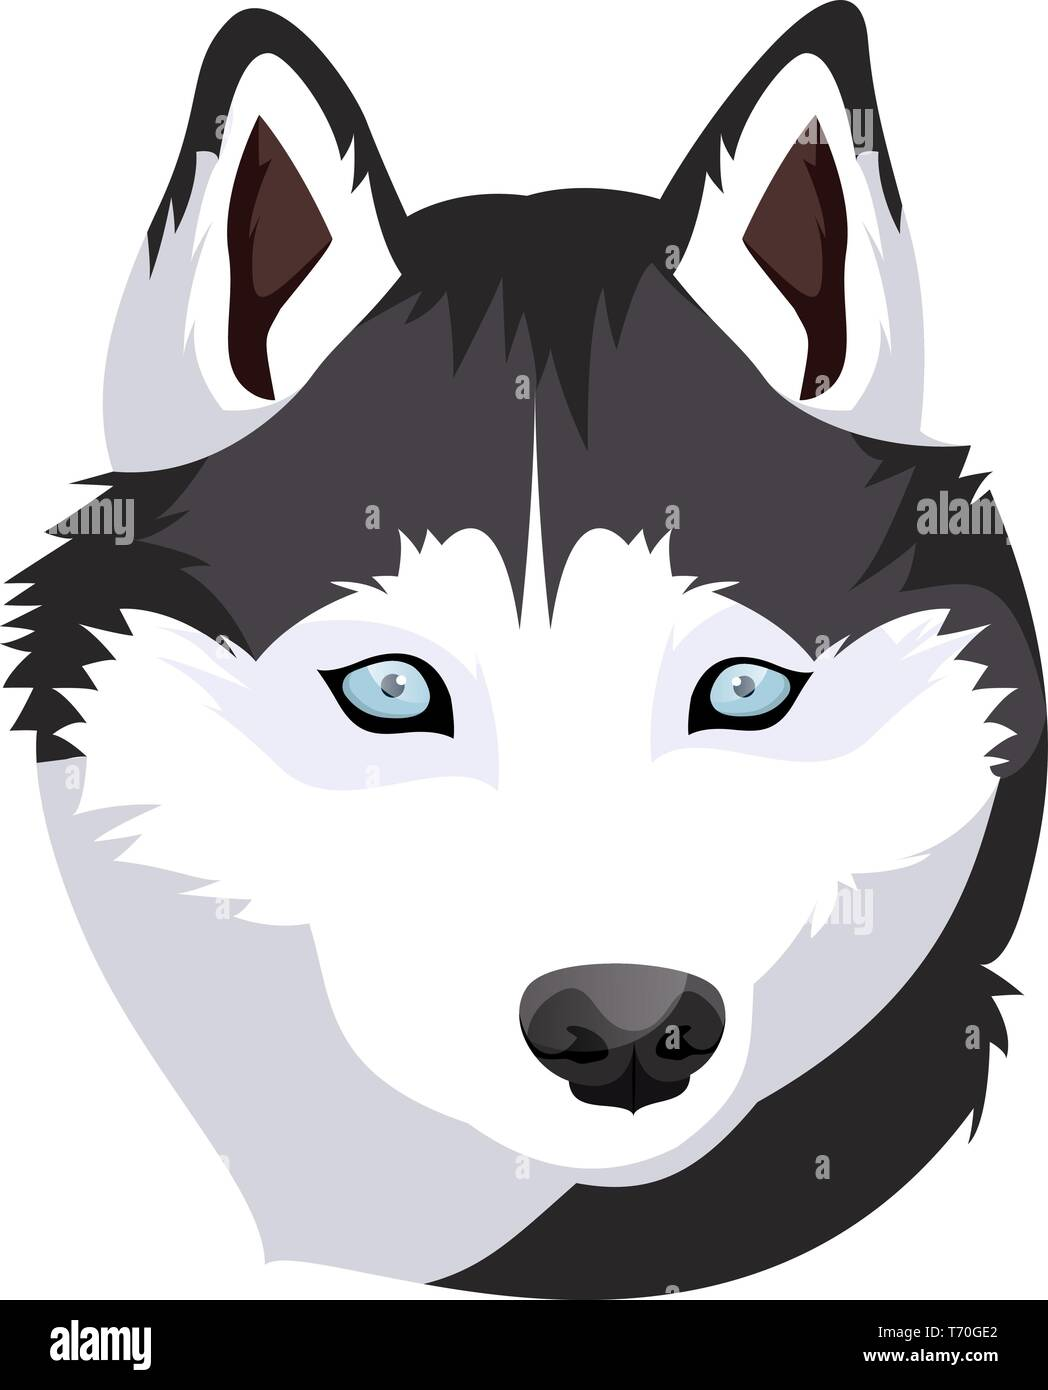 Siberian Husky illustration vector on white background - Stock Vector